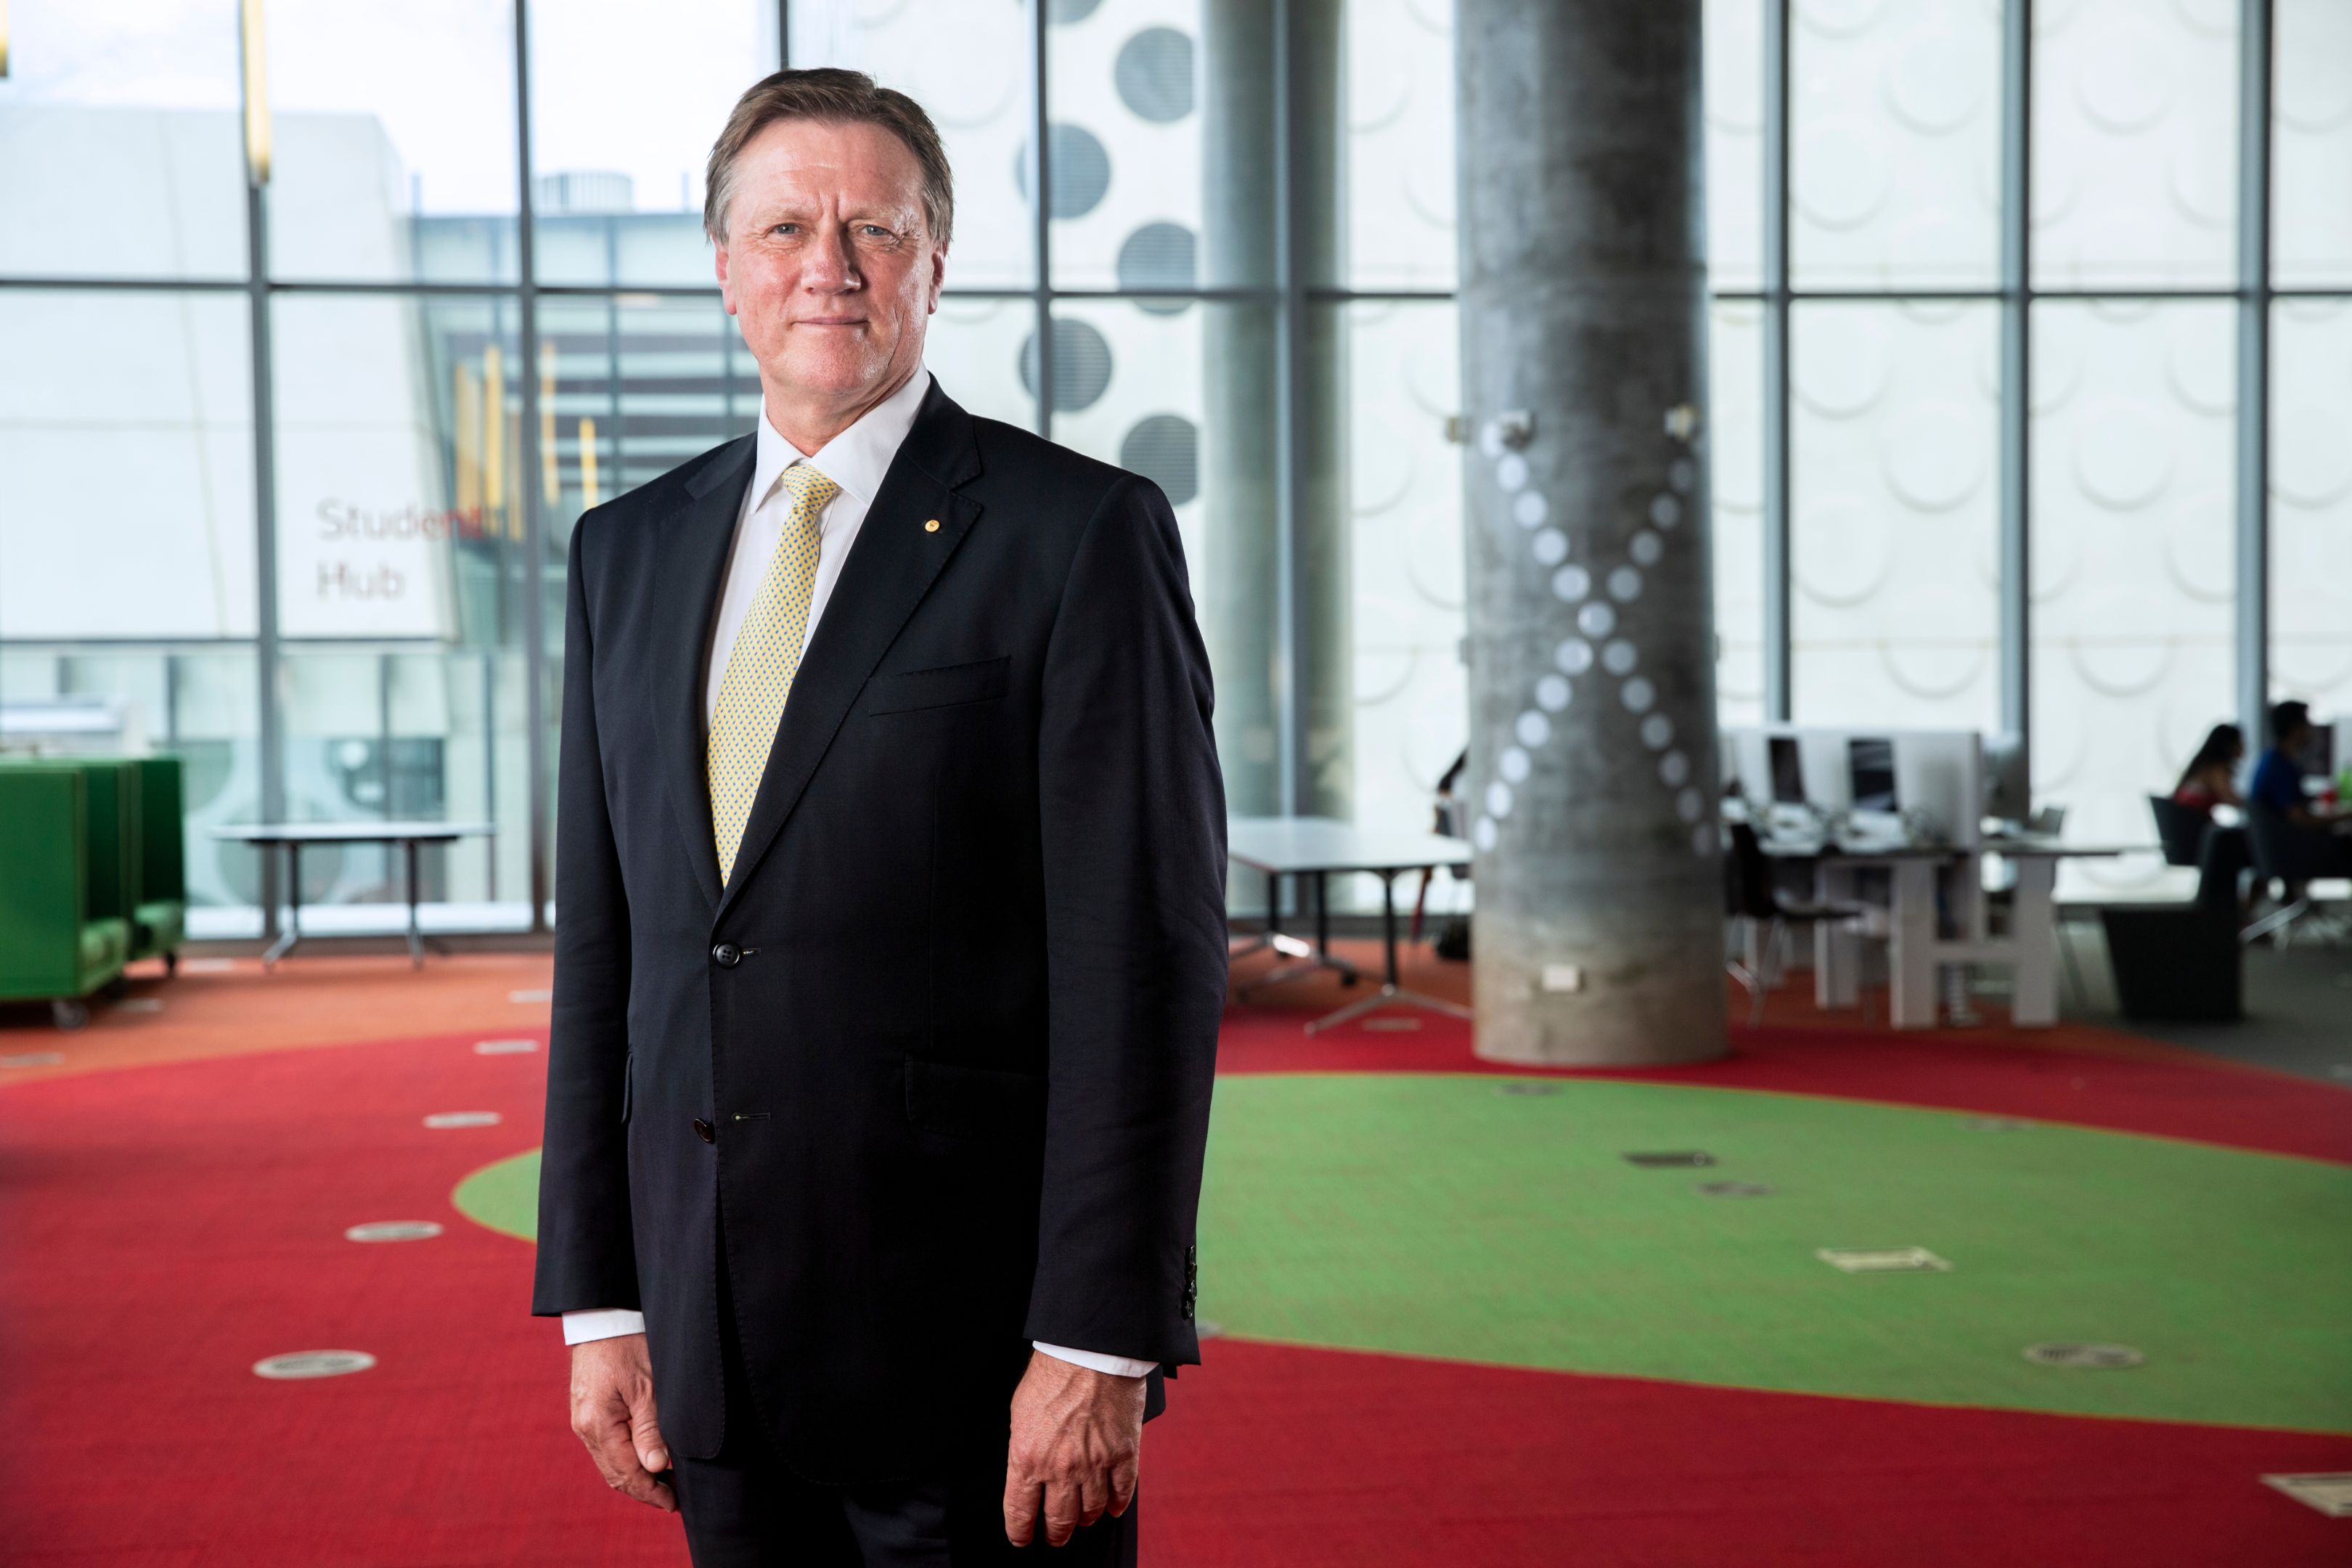 Chancellor of Swinburne stands wearing a suit looking to camera